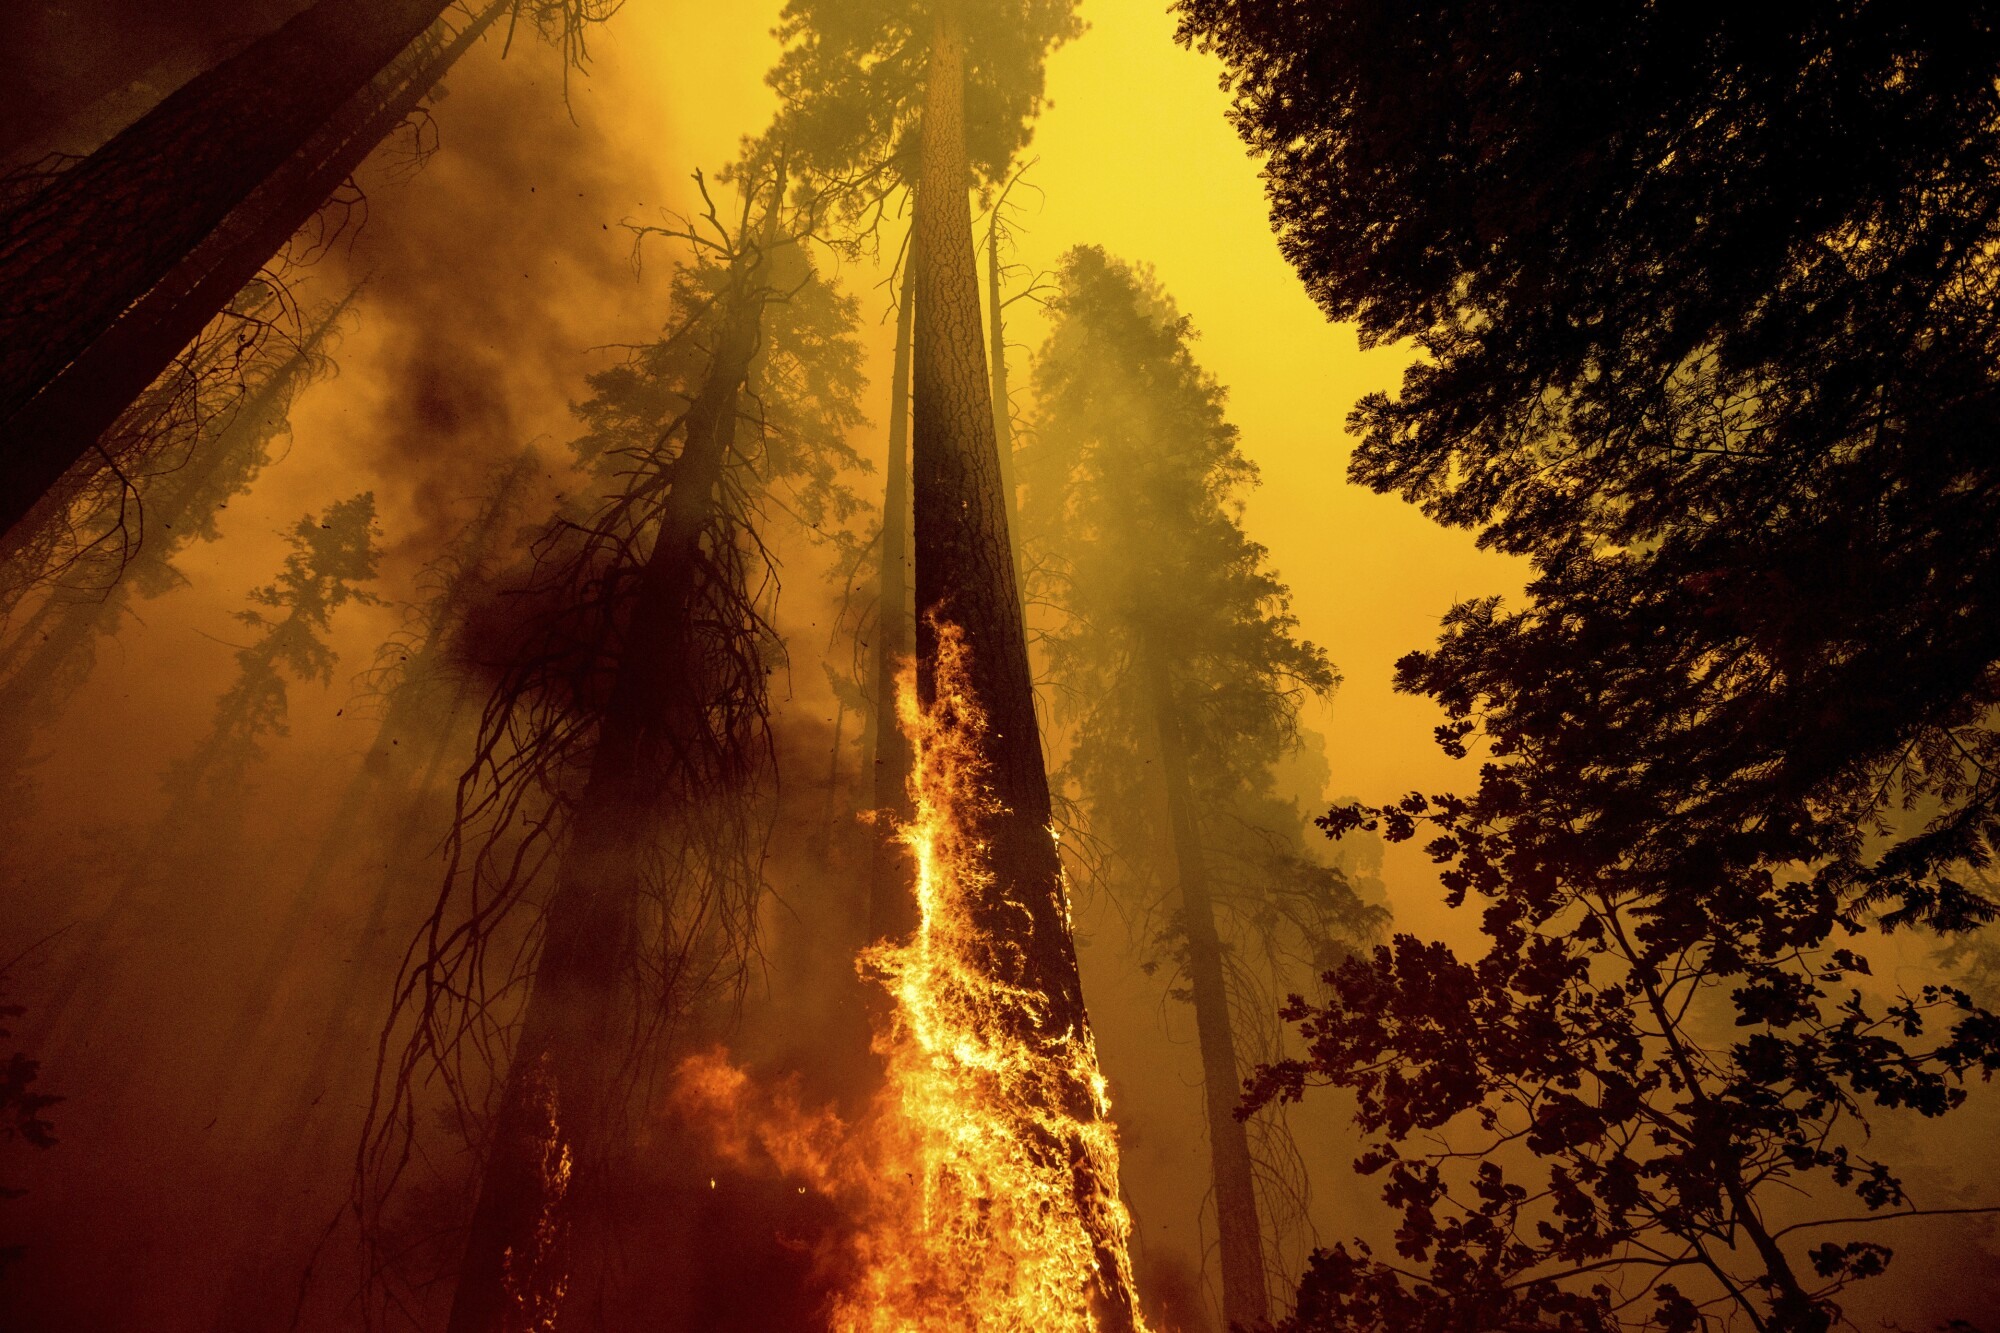 Flames burn up a giant tree surrounded by thick smoke